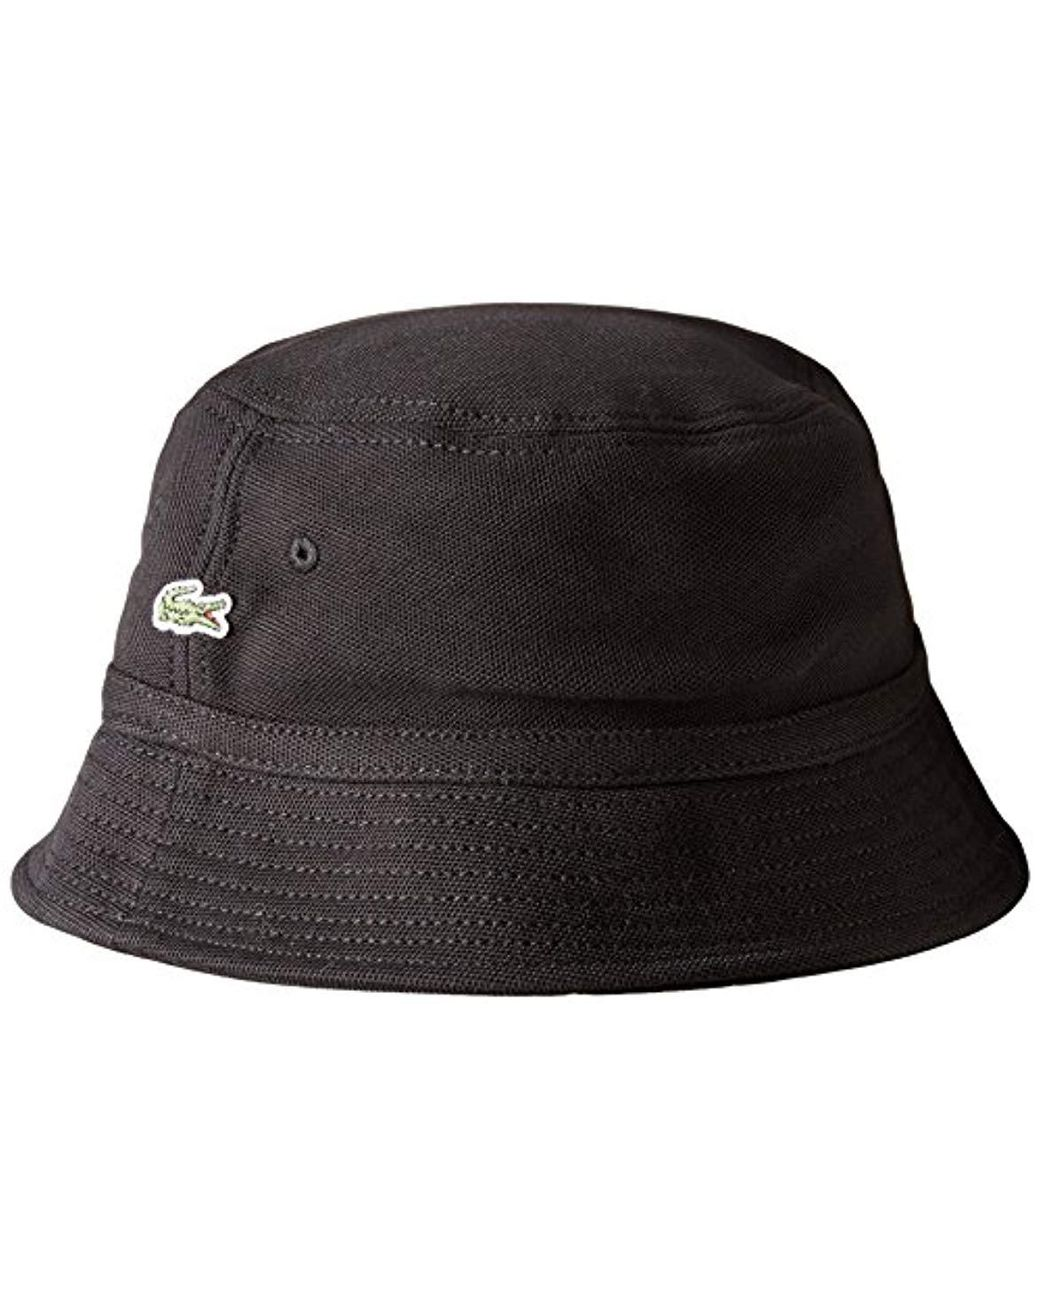 2ce00ae0a36f Lacoste Cotton Pique Bucket Hat in Black for Men - Save 11% - Lyst